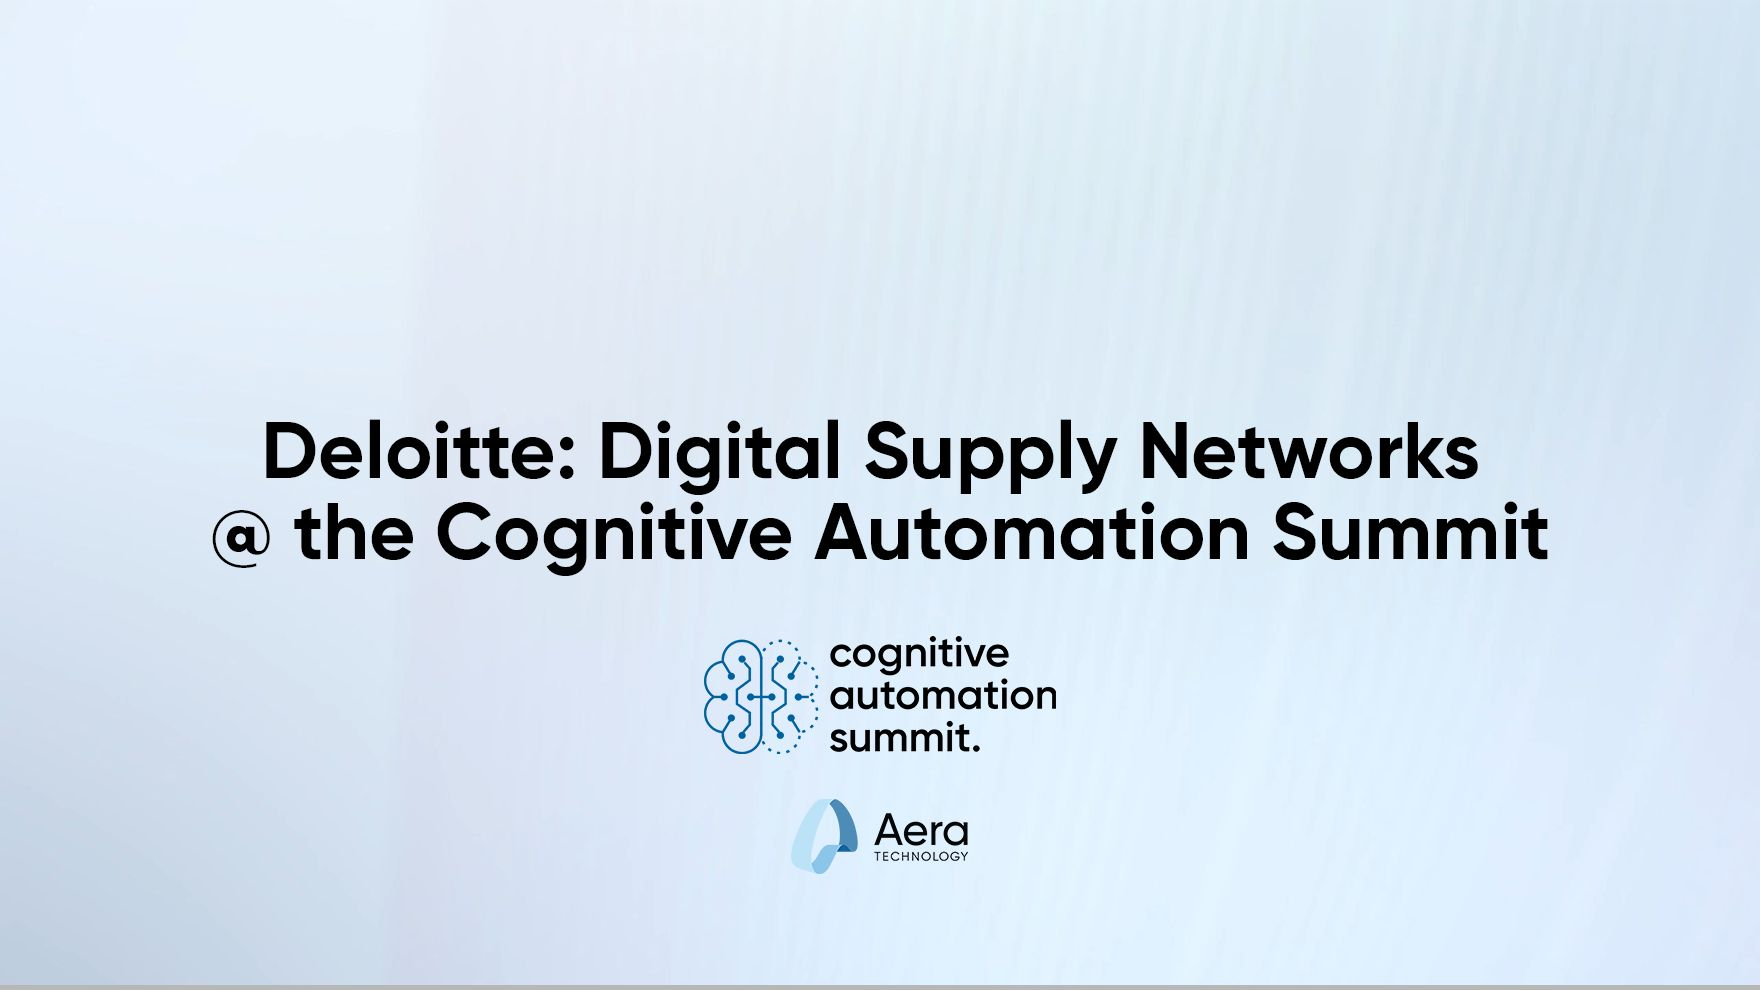 Deloitte: Digital Supply Networks @ the Cognitive Automation Summit